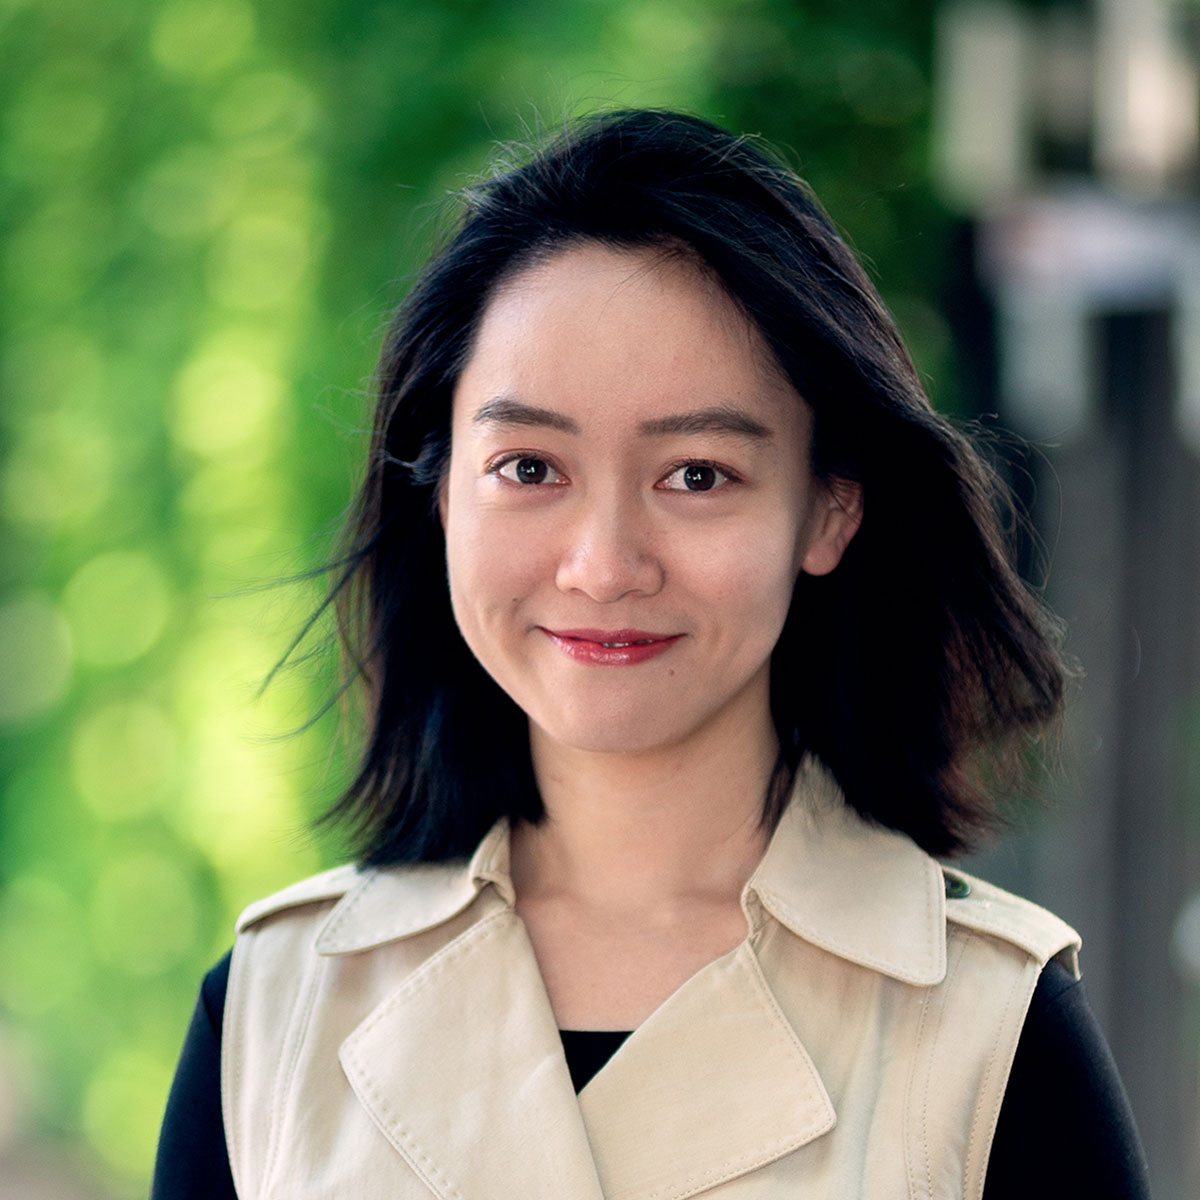 Mengying Bai is a design associate for Los Angeles architecture firm Tim Barber Ltd.